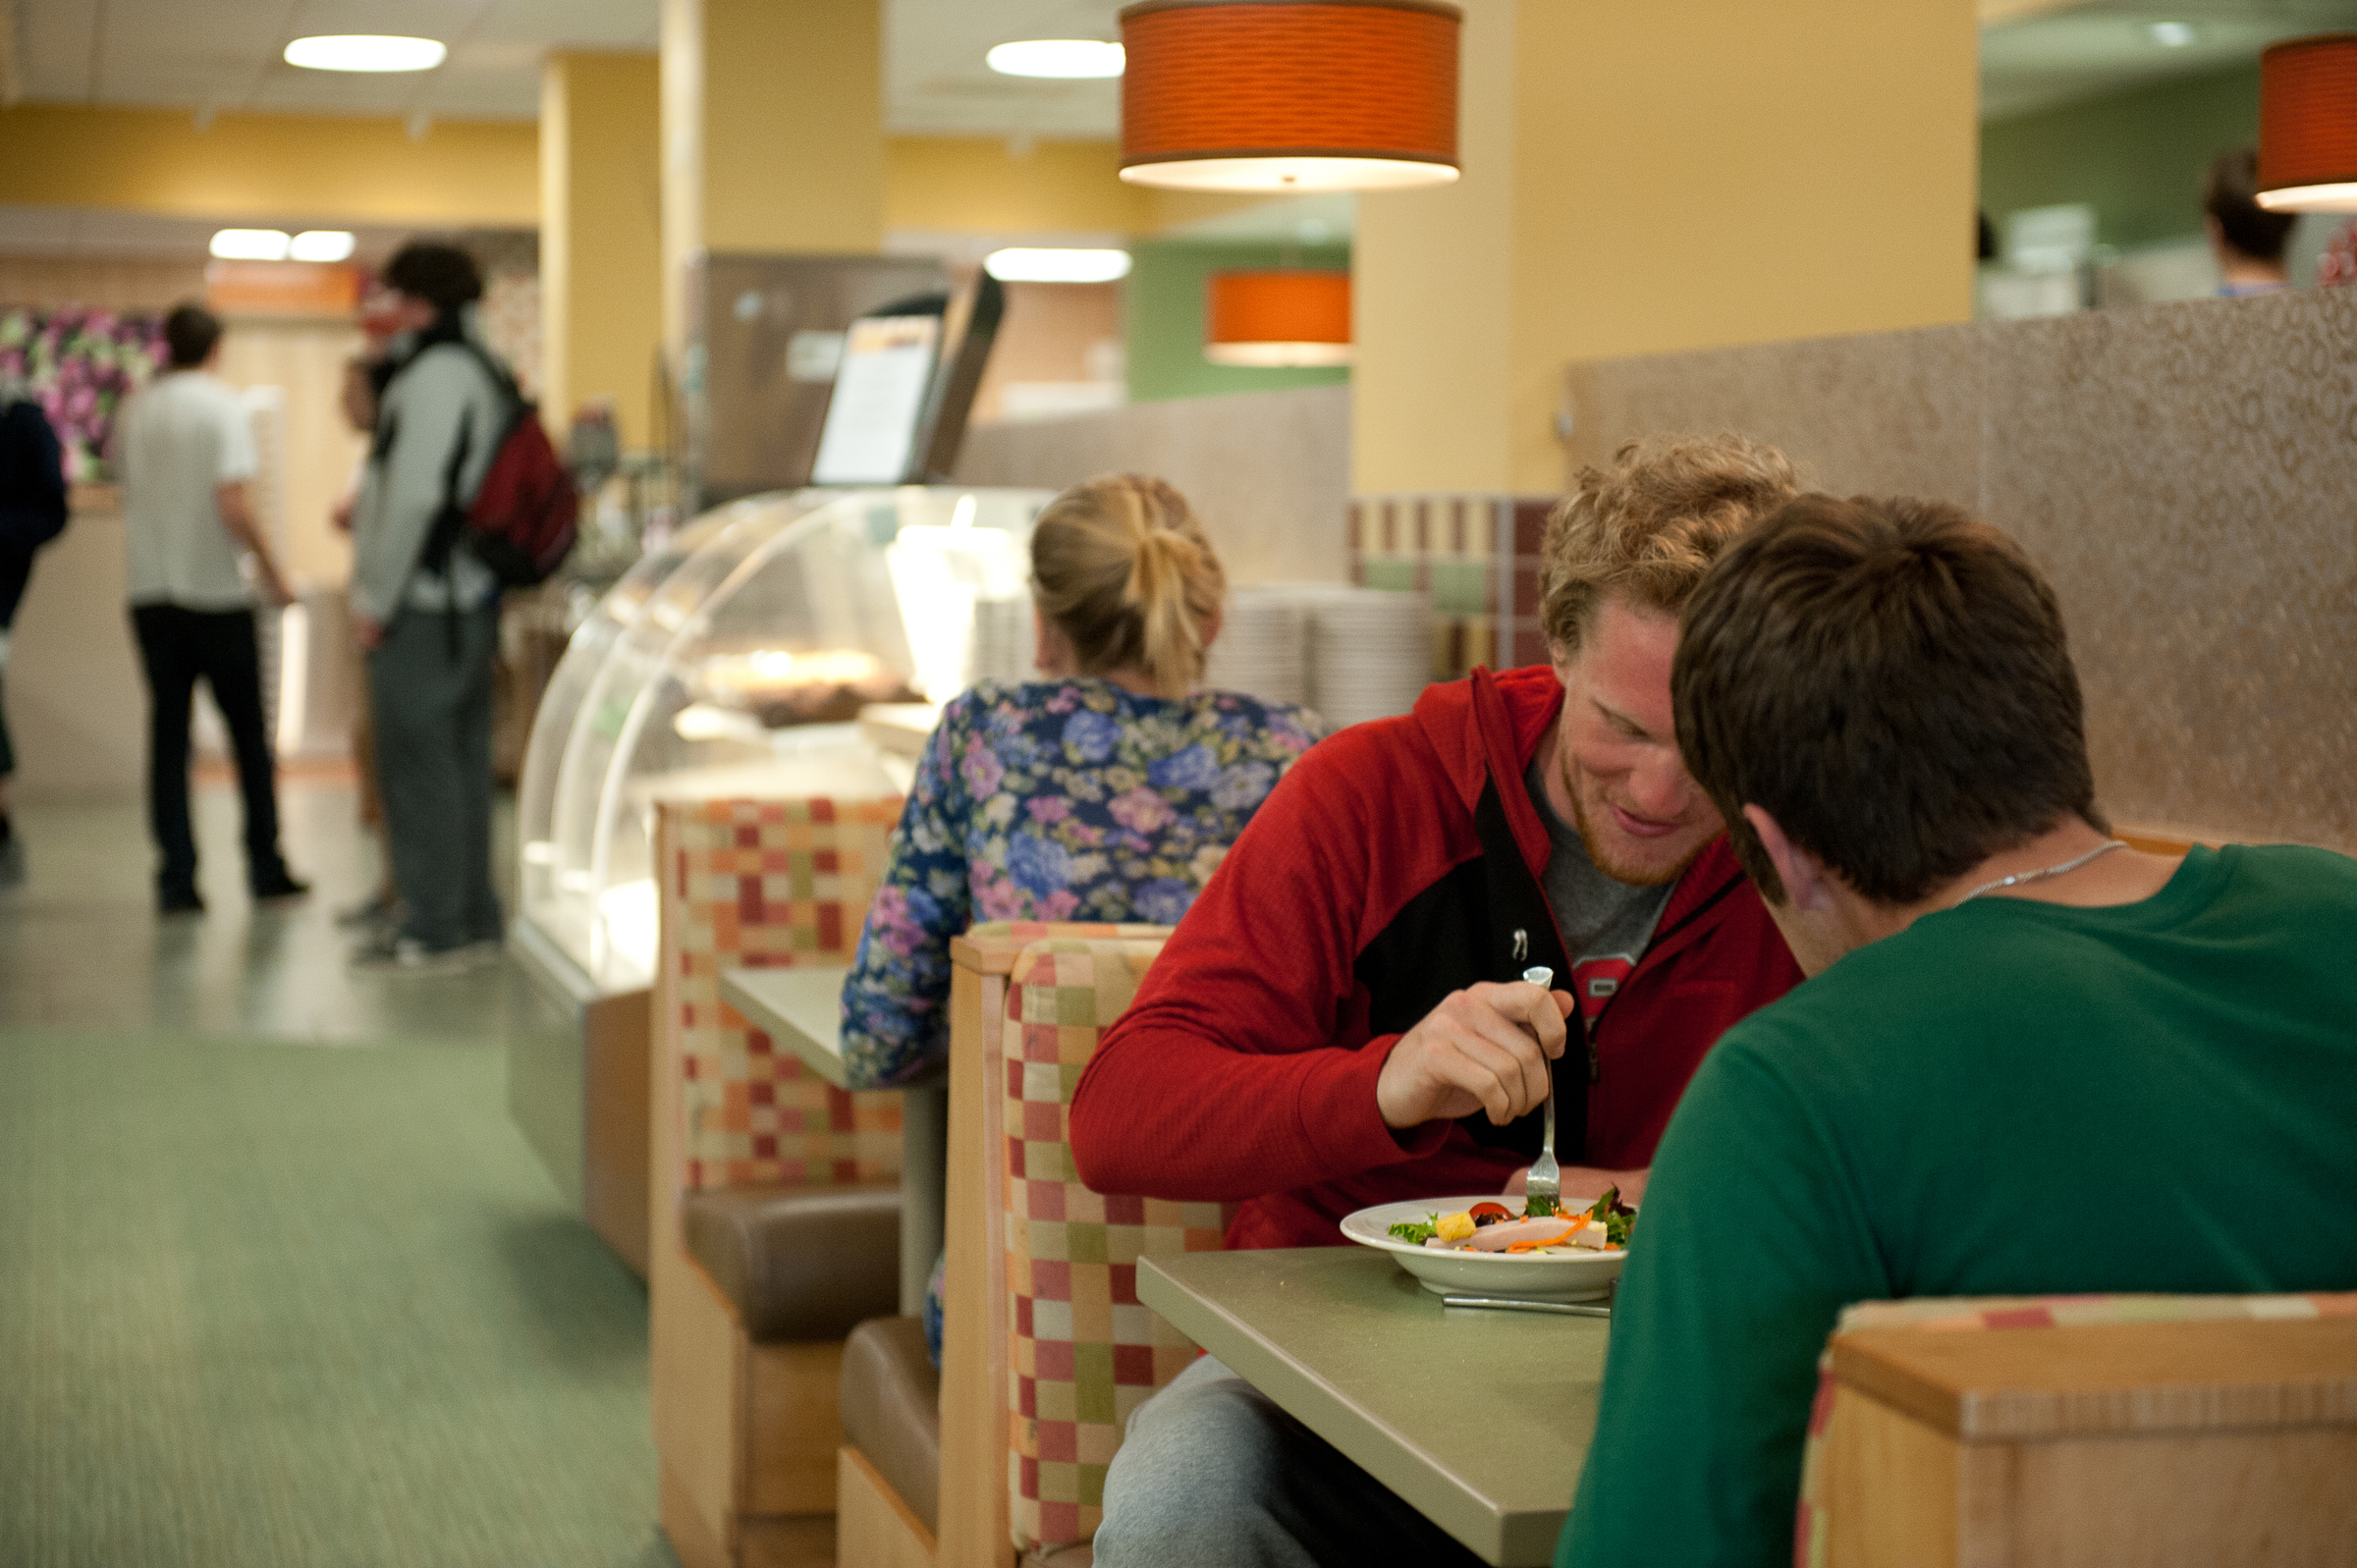 Uvm Food Services